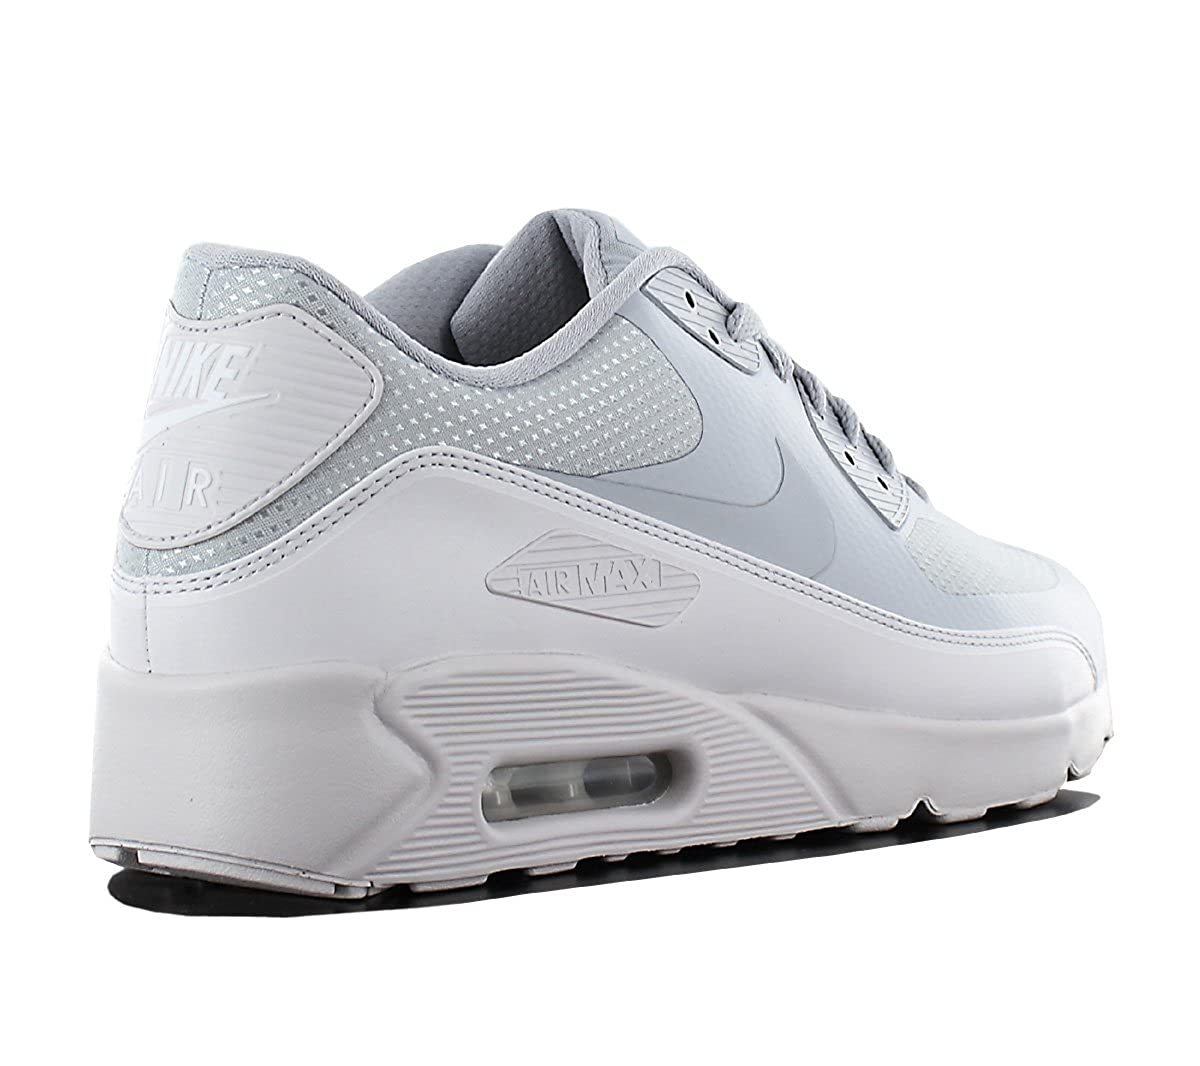 f8453a57cd Nike Air Max 90 Ultra 2.0 Essential Footwear Grey Mens Trainers Sneaker  Shoes: Amazon.co.uk: Shoes & Bags